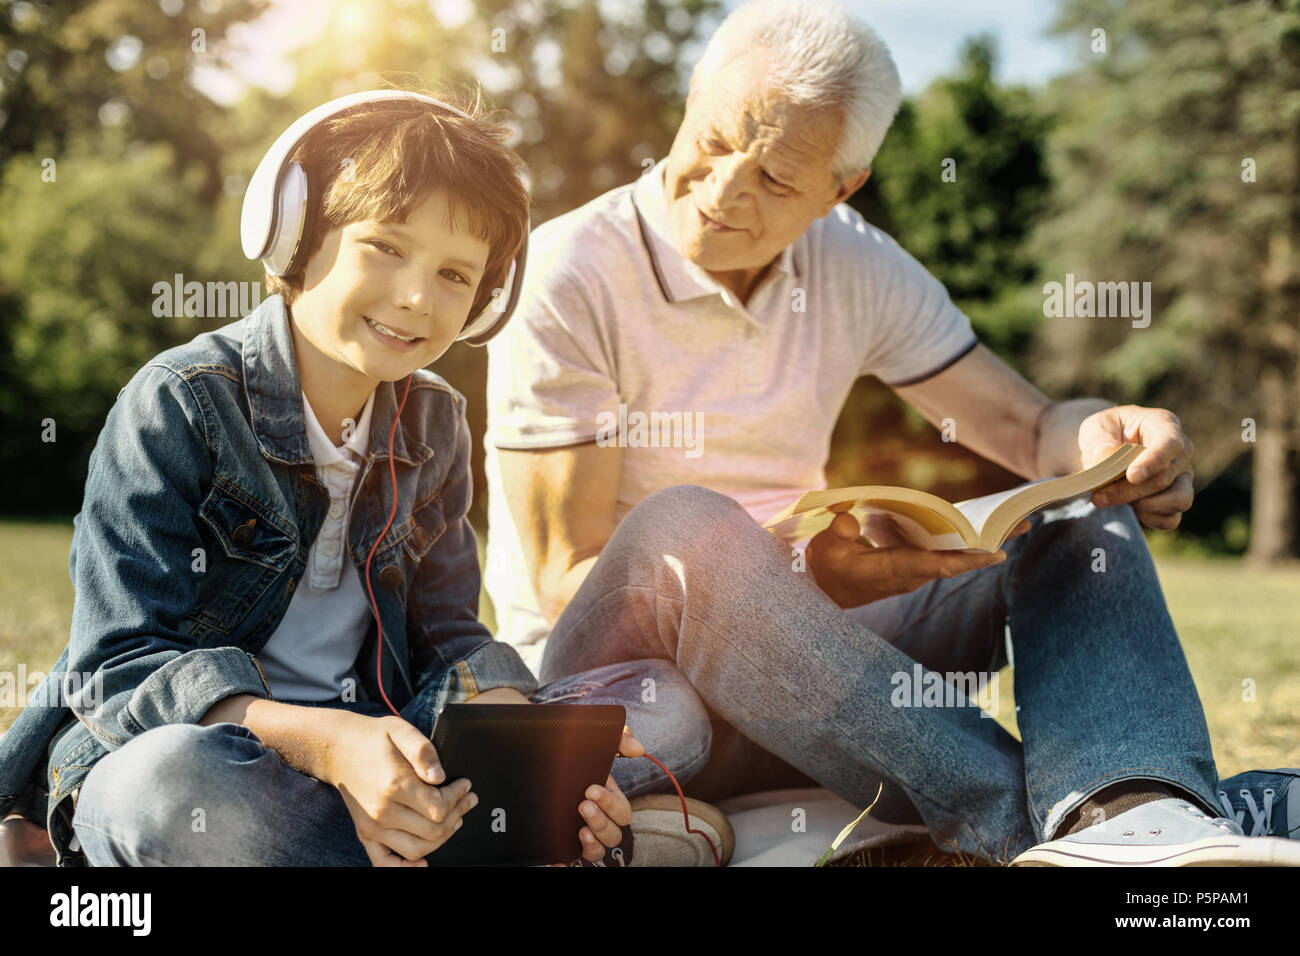 Smiling boy with his tablet and headphones sitting with grandpa - Stock Image